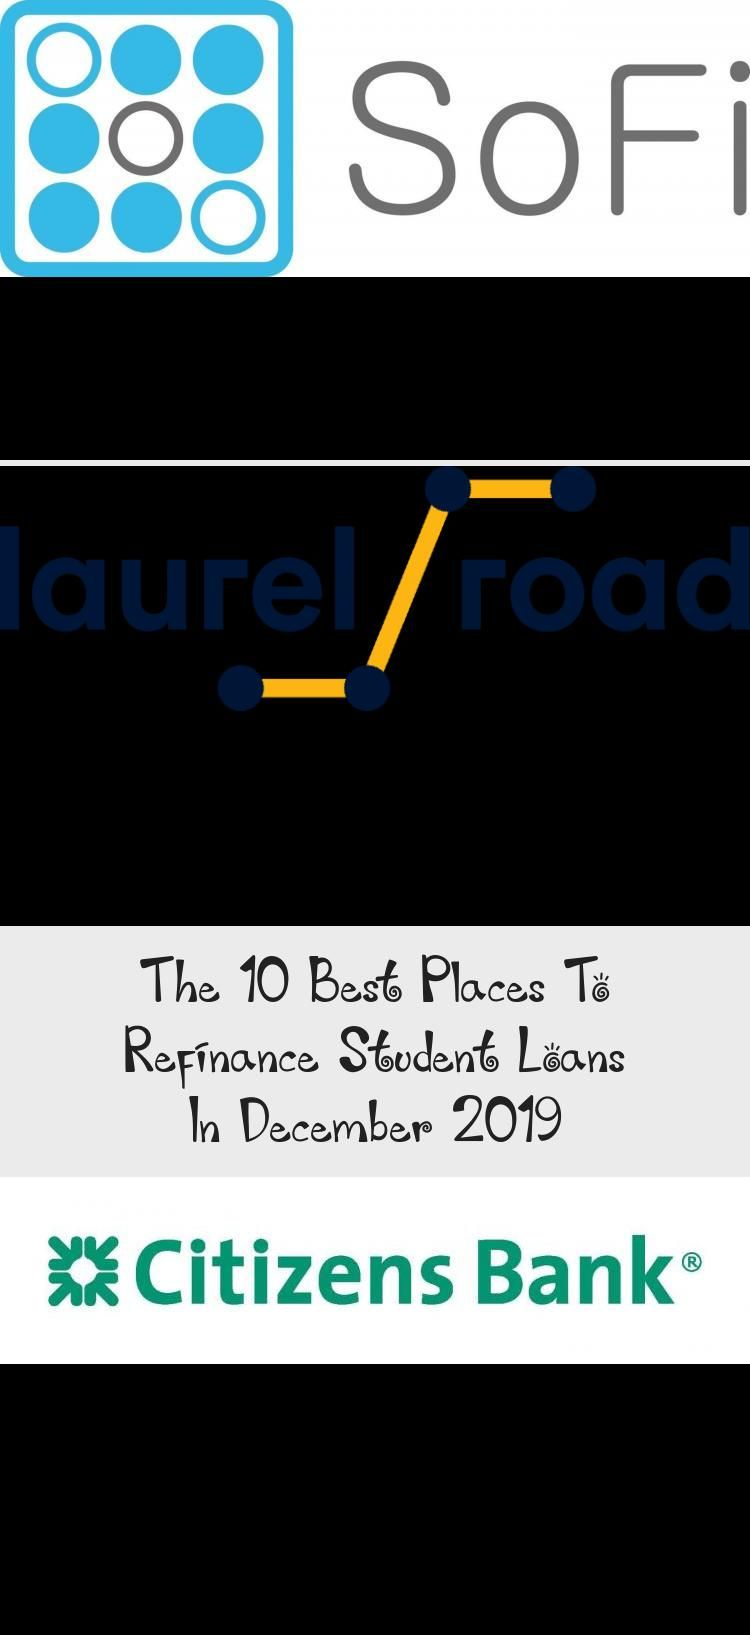 The 10 Best Places To Refinance Student Loans In December 2019 In 2020 Refinance Student Loans Student Loans Student Loan Consolidation